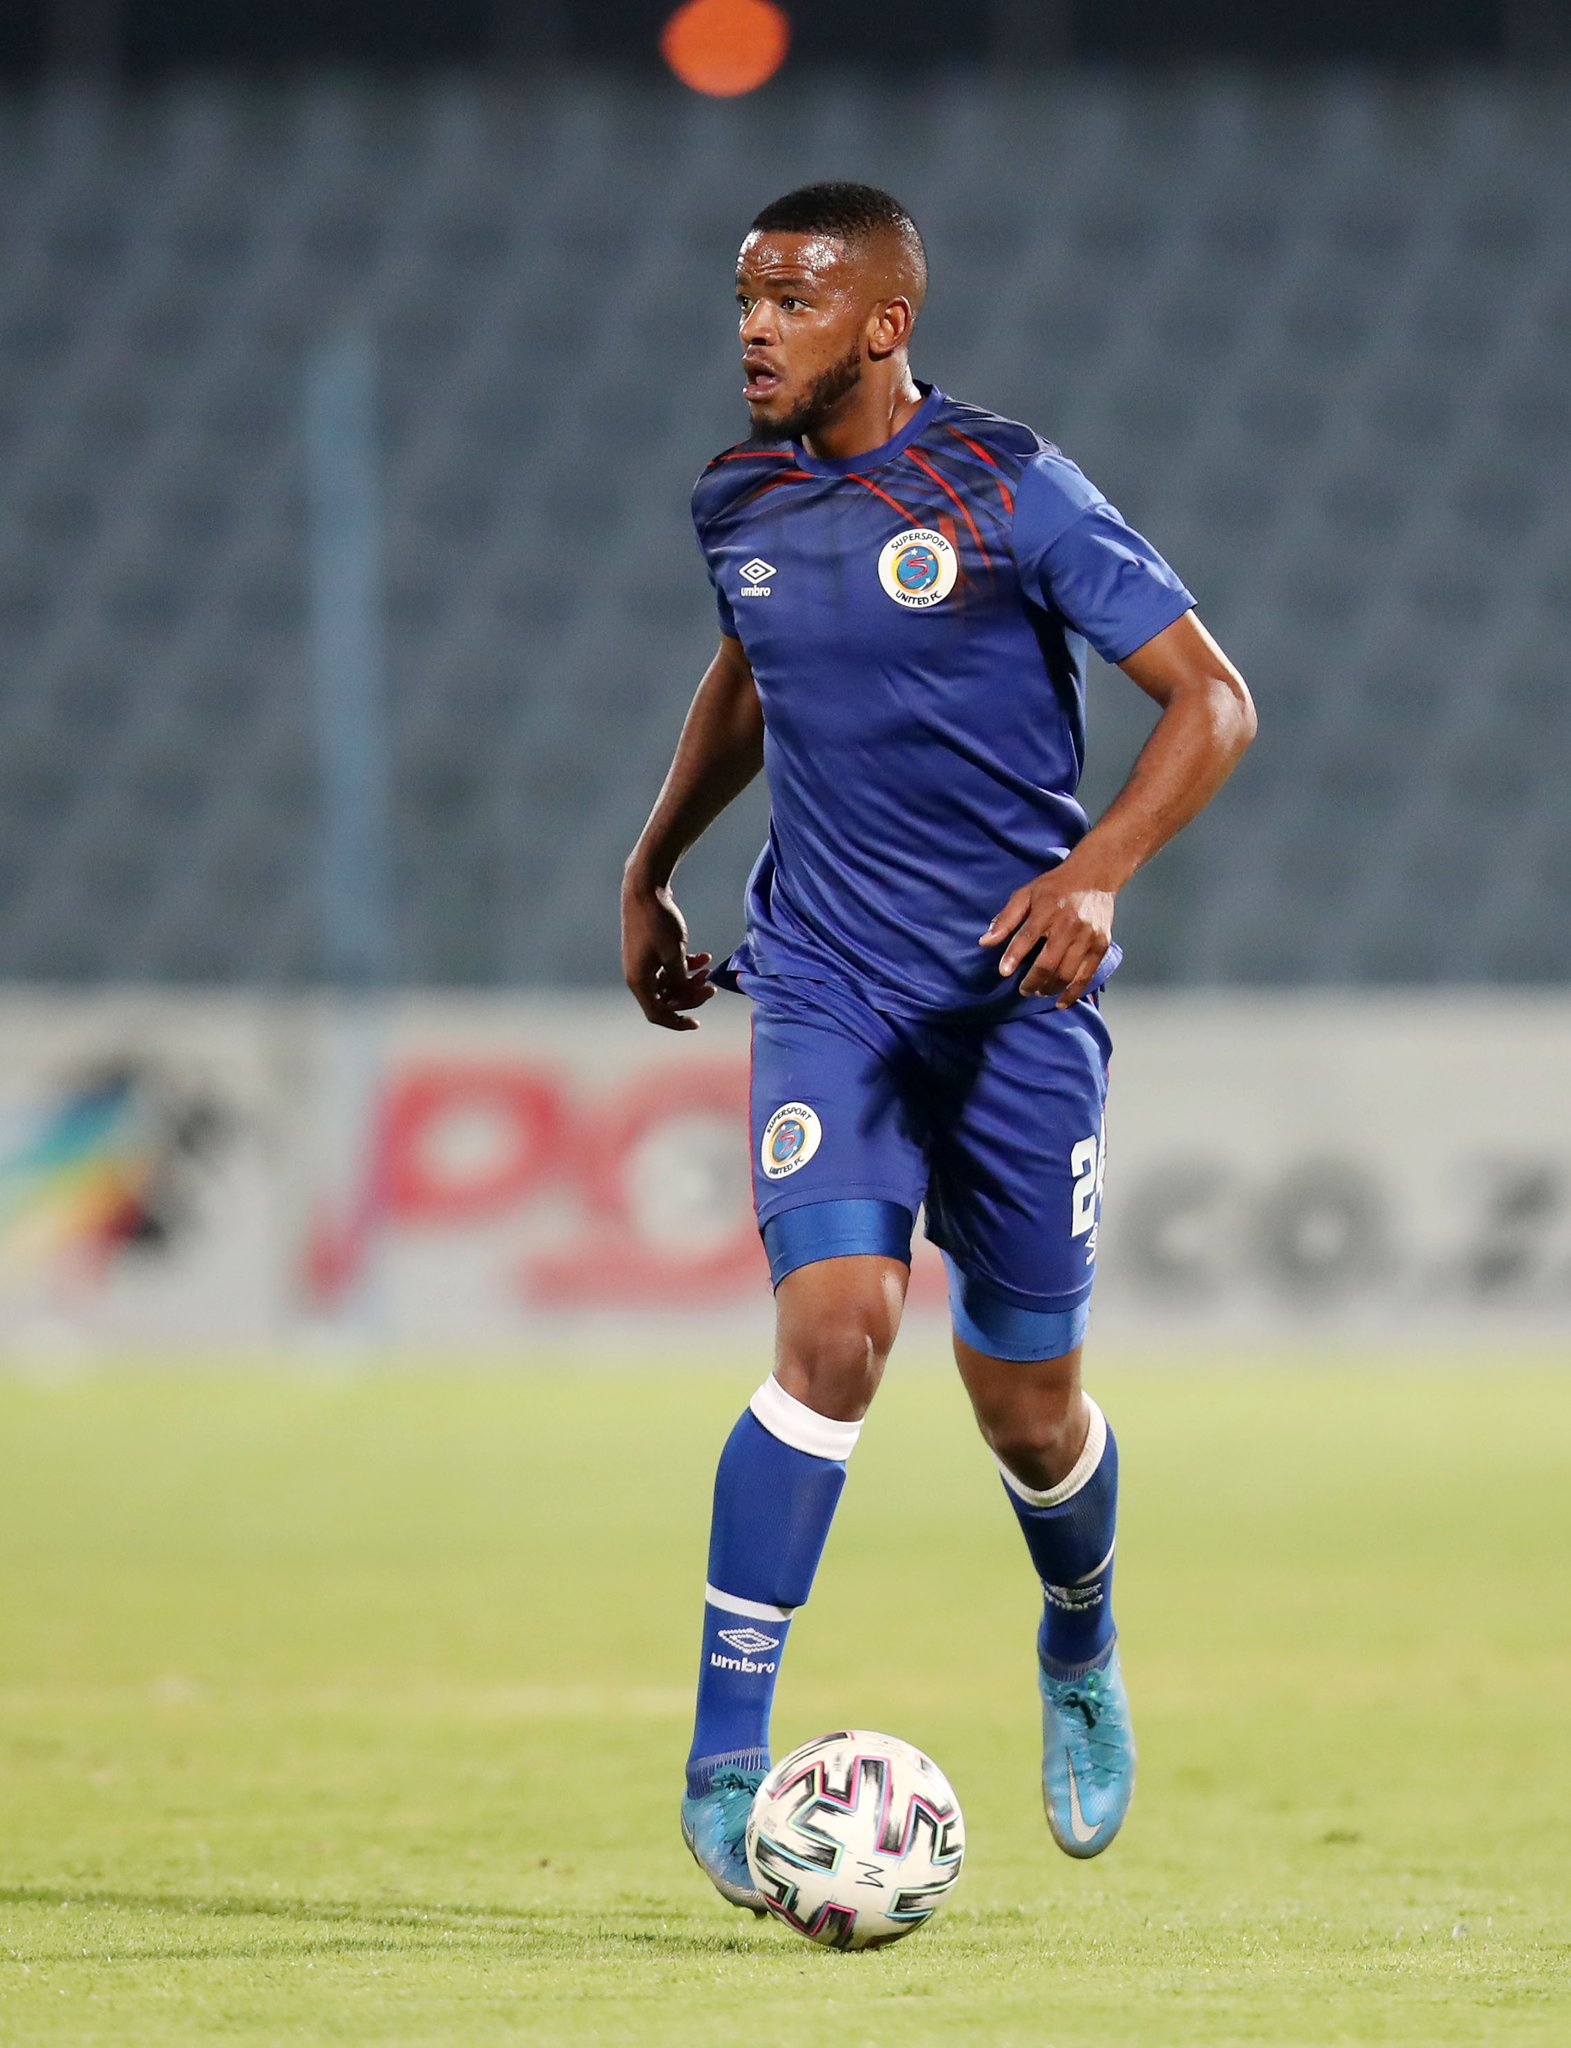 Mbule earns SuperSport a point as Swallows draw again